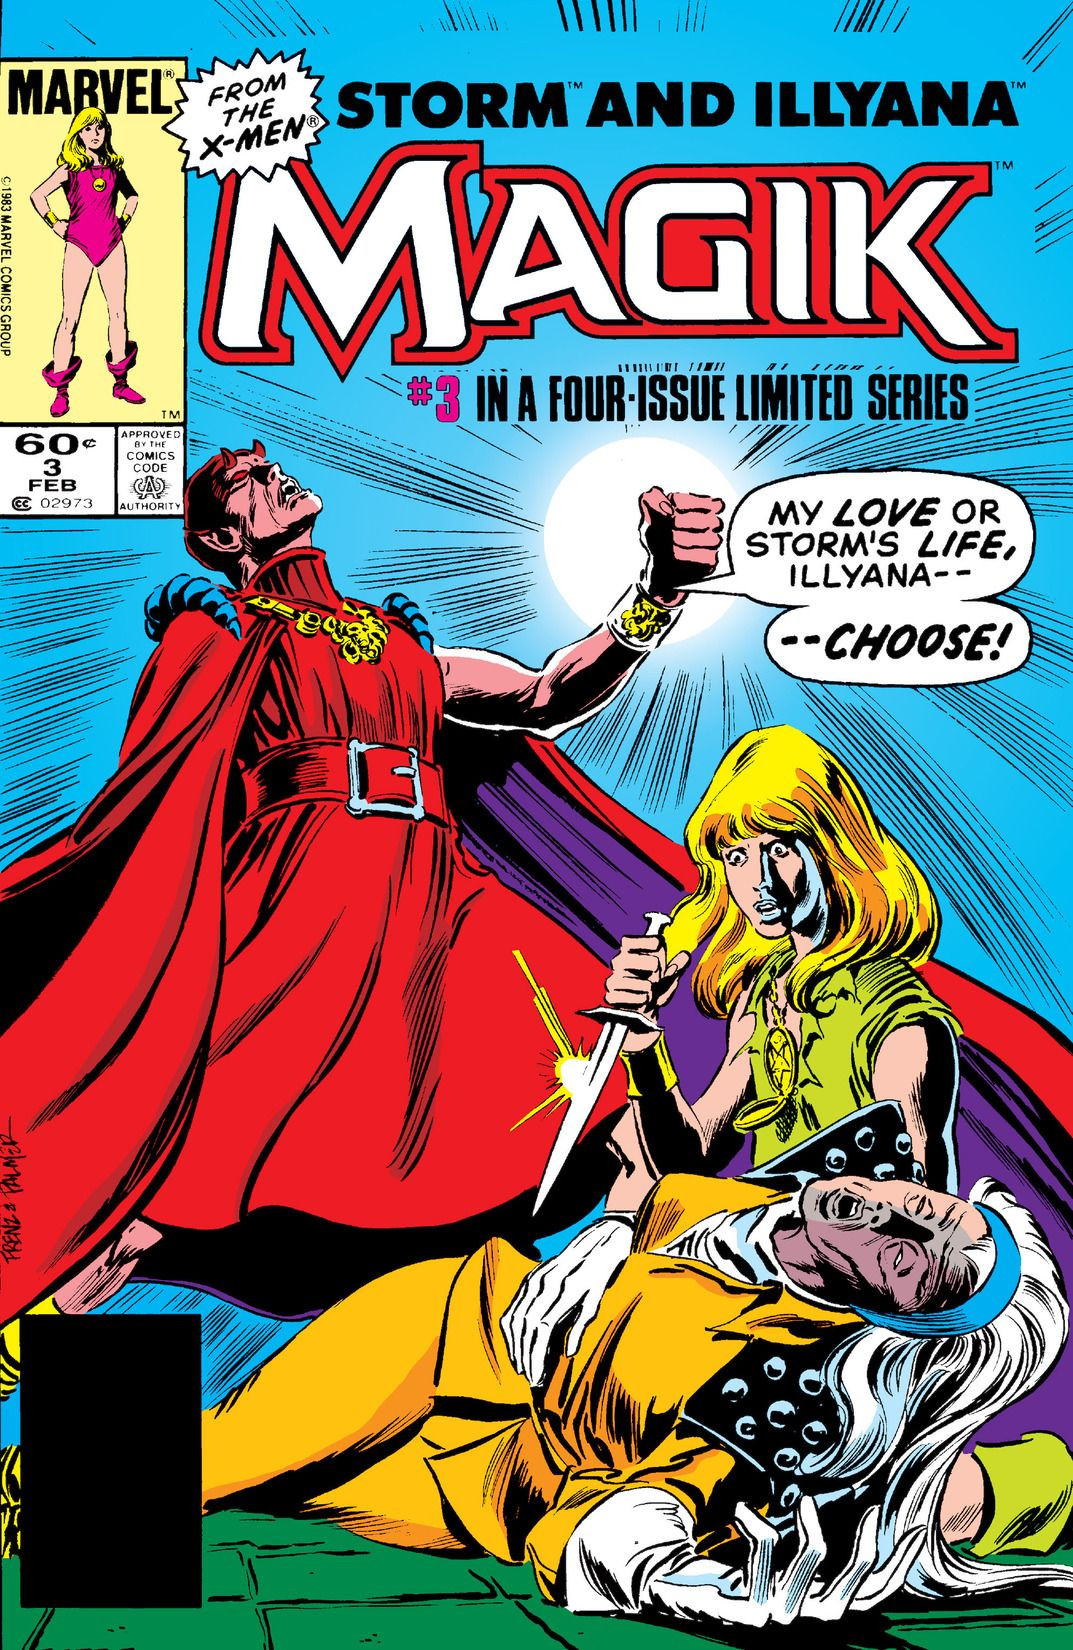 Magik (Illyana and Storm Limited Series) Vol 1 3.jpg